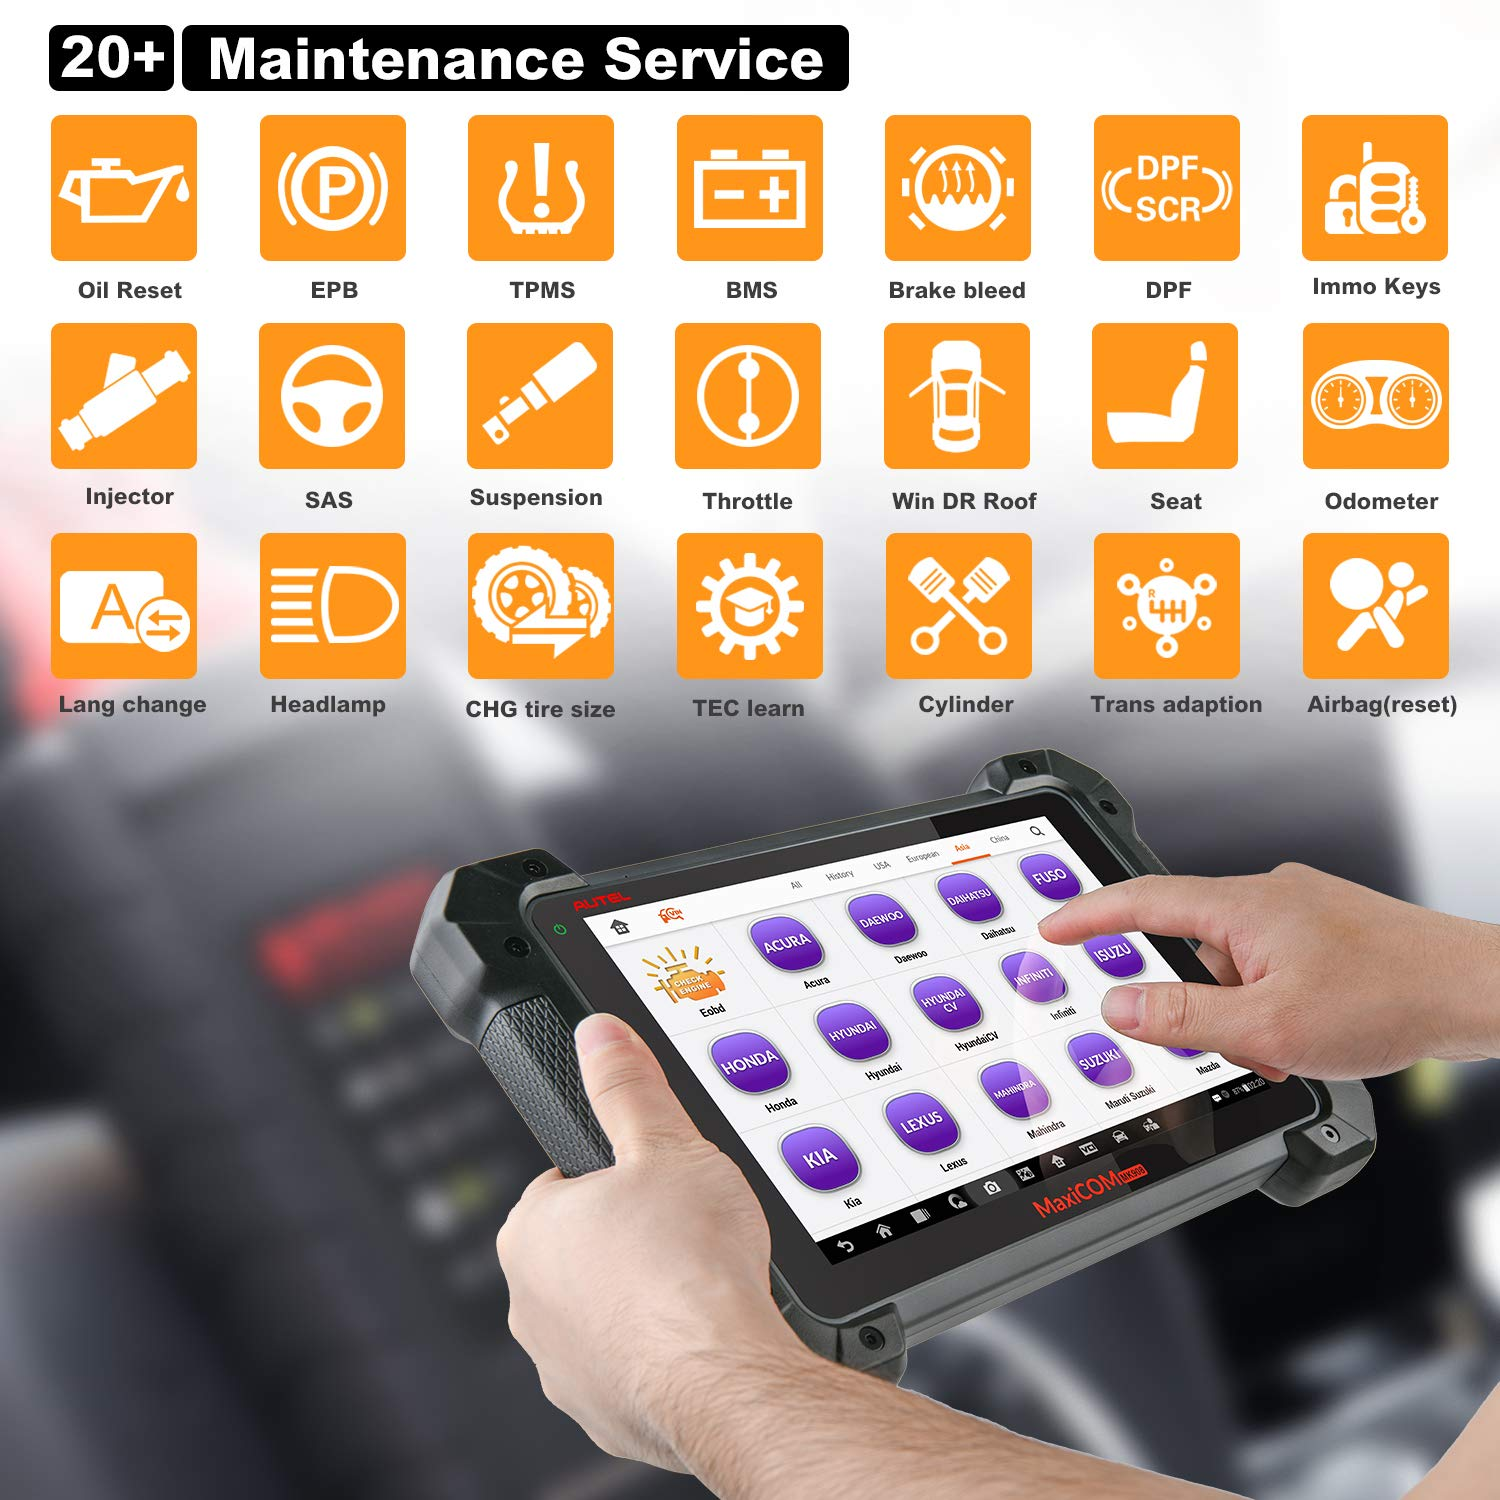 with ECU Coding Active Test Bi-Directional Control with Fuel Injector//Fuel sync Autel Maxisys MS908 Automotive Diagnostic Tool Android Analysis System with Advanced Key Programming ECU Coding